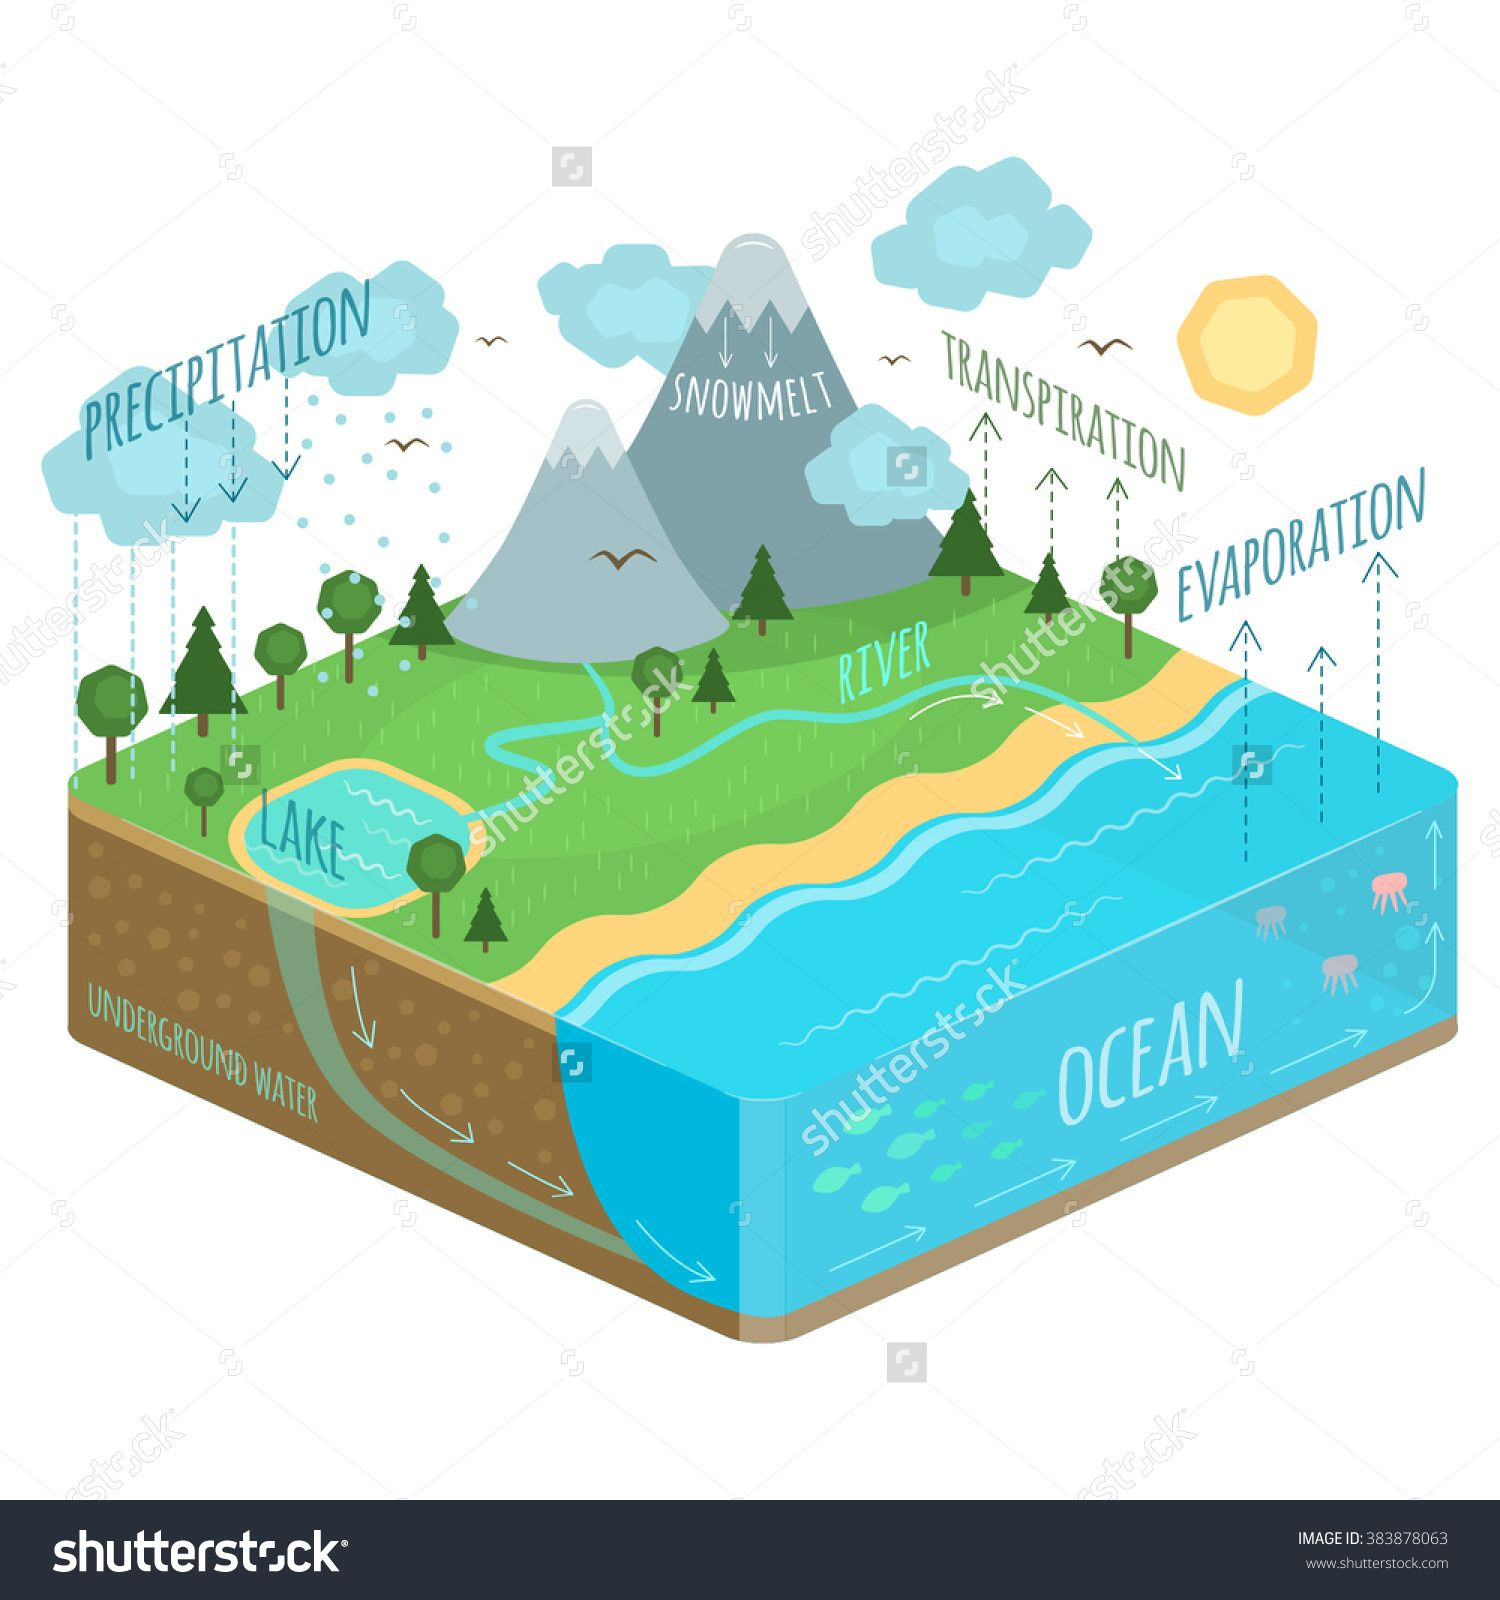 Water Cycle Diagram Rain Tree Soil Precipitation Transpiration River Earth Cloud